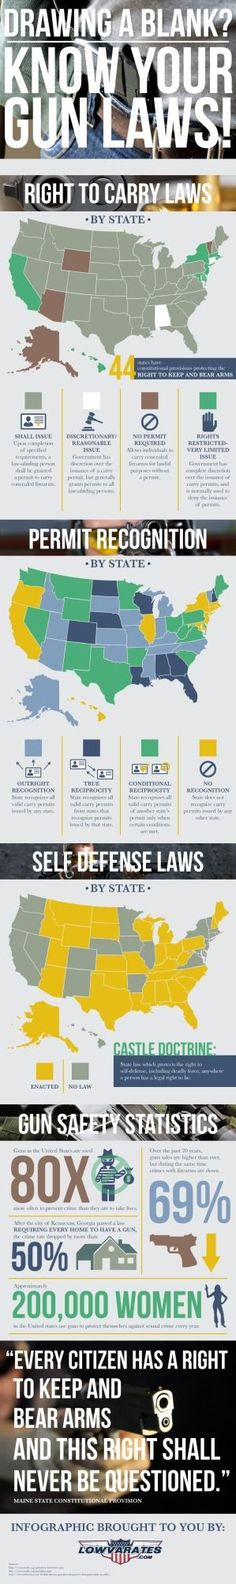 If you own, or carry a gun regularly, it's important that you know your gun laws and your rights. 44 states have constitutional provision protecting the right to keep and bear arm. However many state laws are different by state and you also need to consid